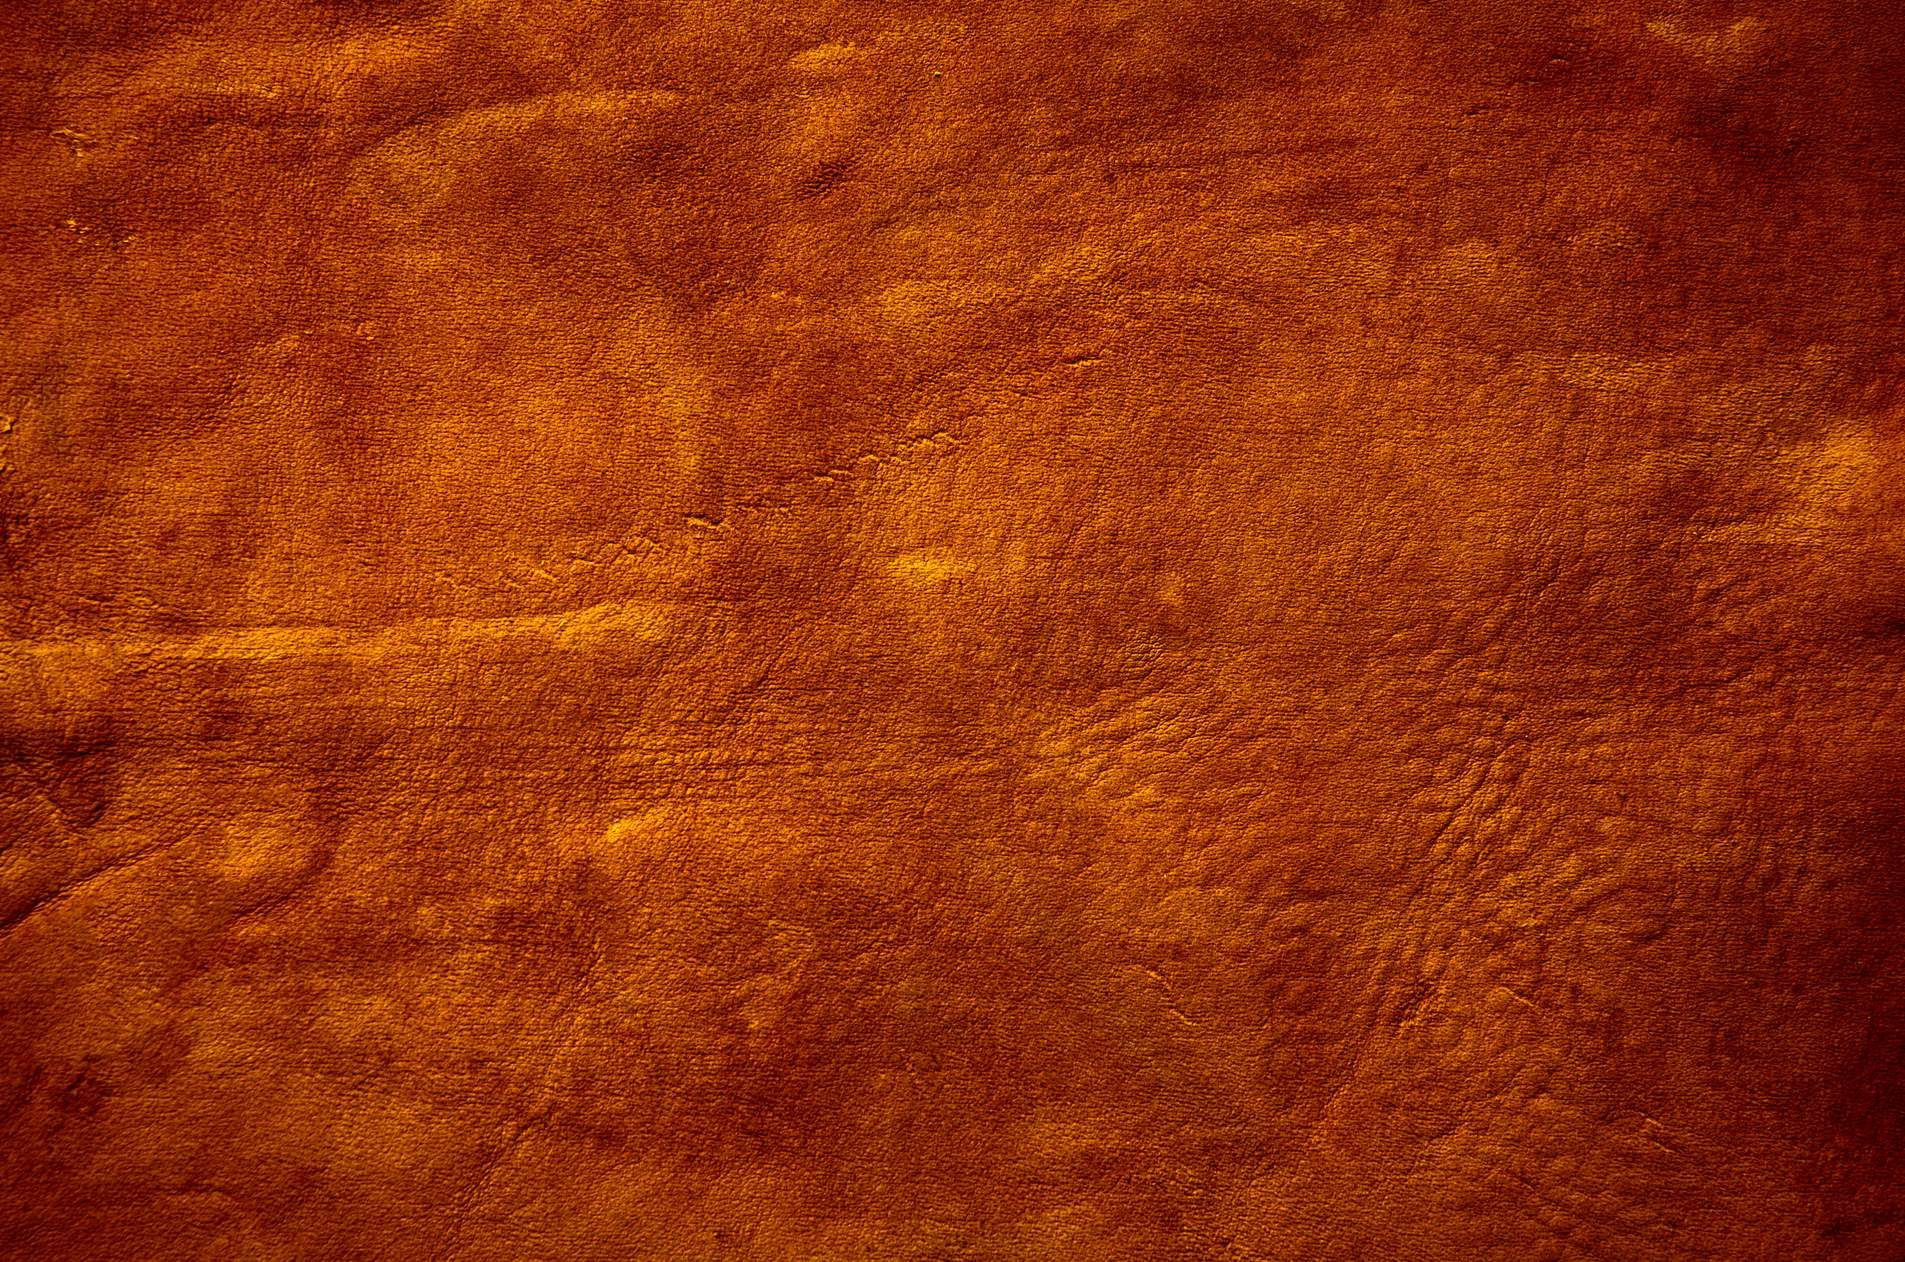 Vintage Yellow Soft Leather Texture Background - PhotoHDX